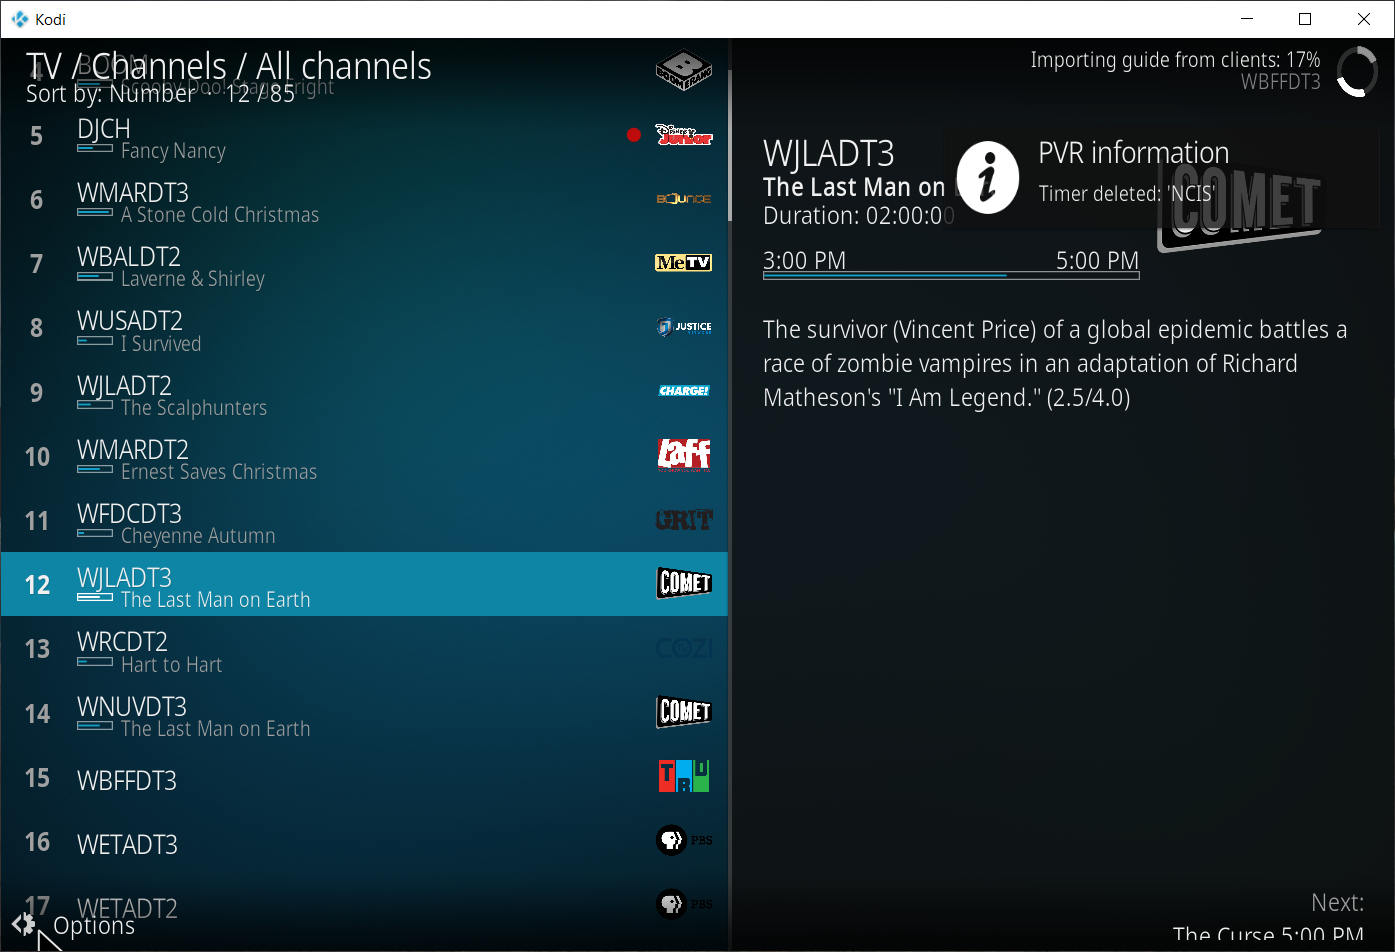 Extended Channel Names Not Displayed In Kodi (18 0 - RC3